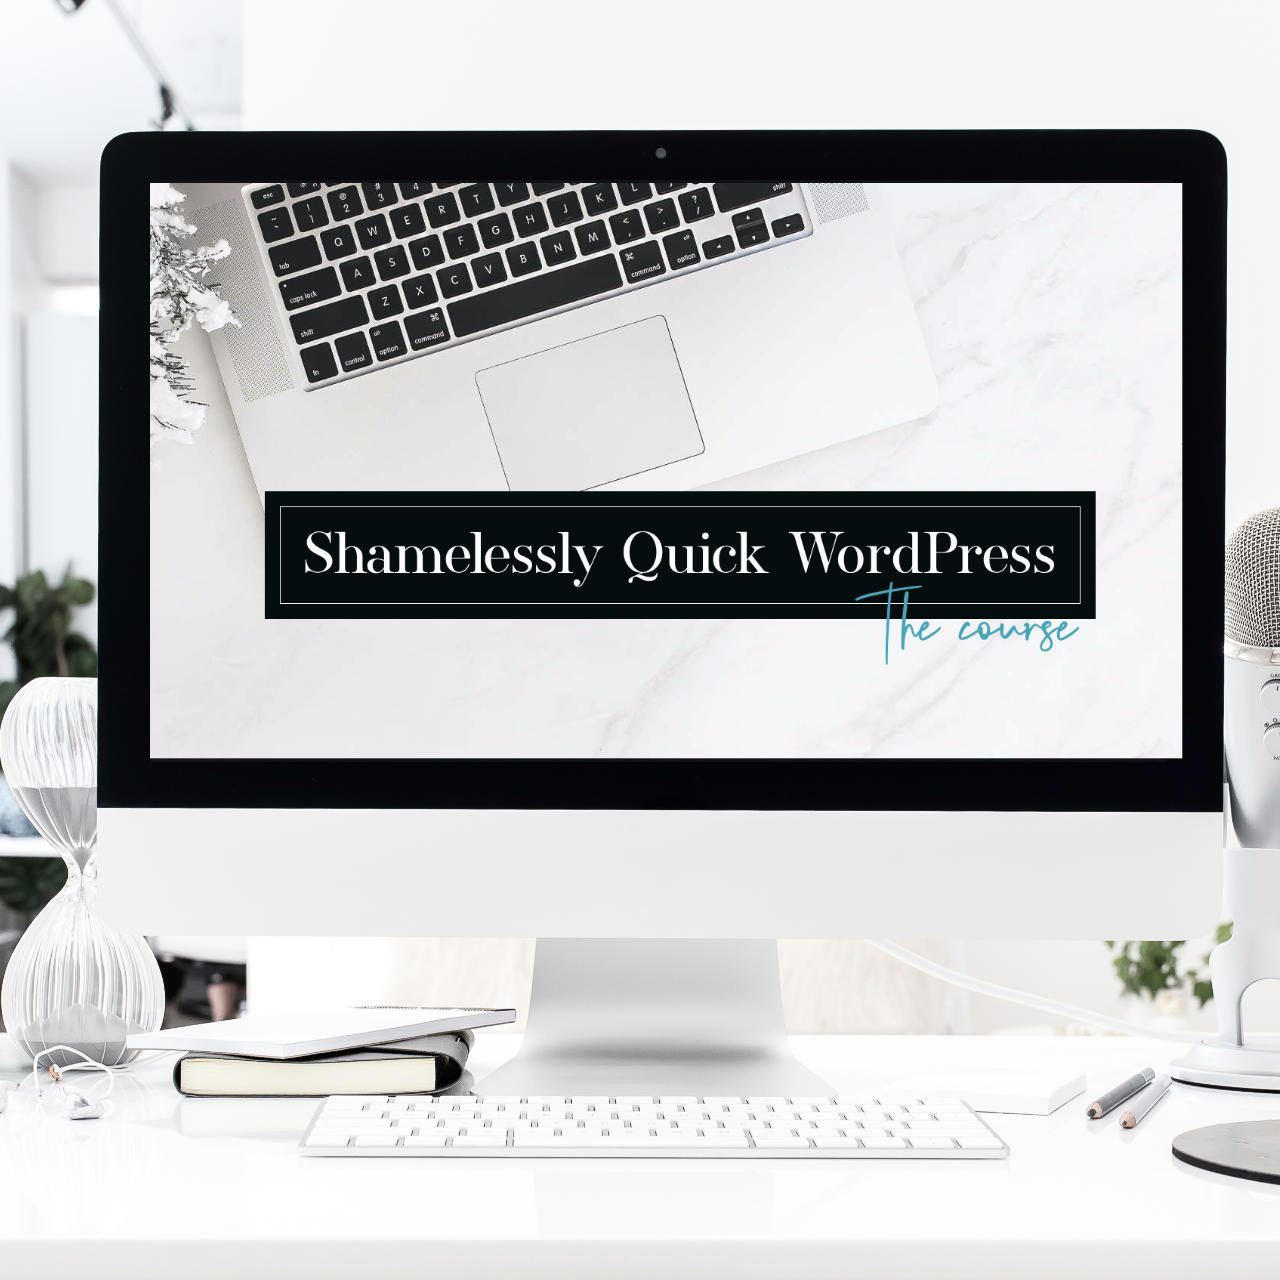 shamelessly-quick-wordpress